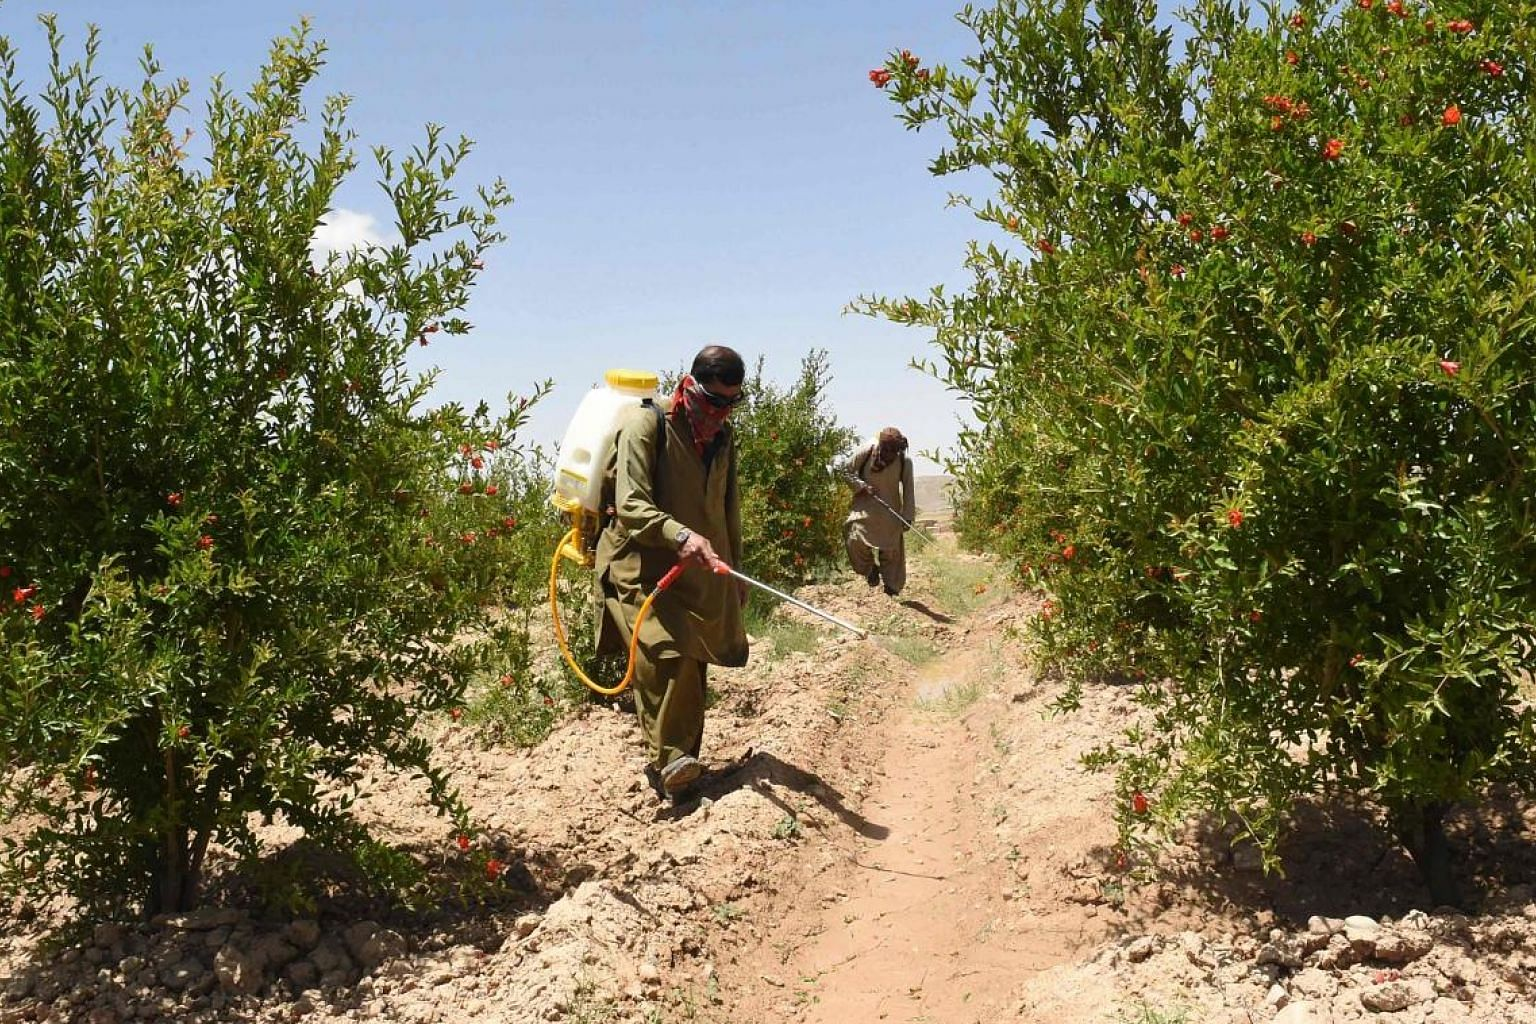 Pakistan agriculture department officials spraying pesticides to kill locusts in Pishin district. India is bracing itself for a growing assault on its western front, with droves of locusts flying in from Pakistan.